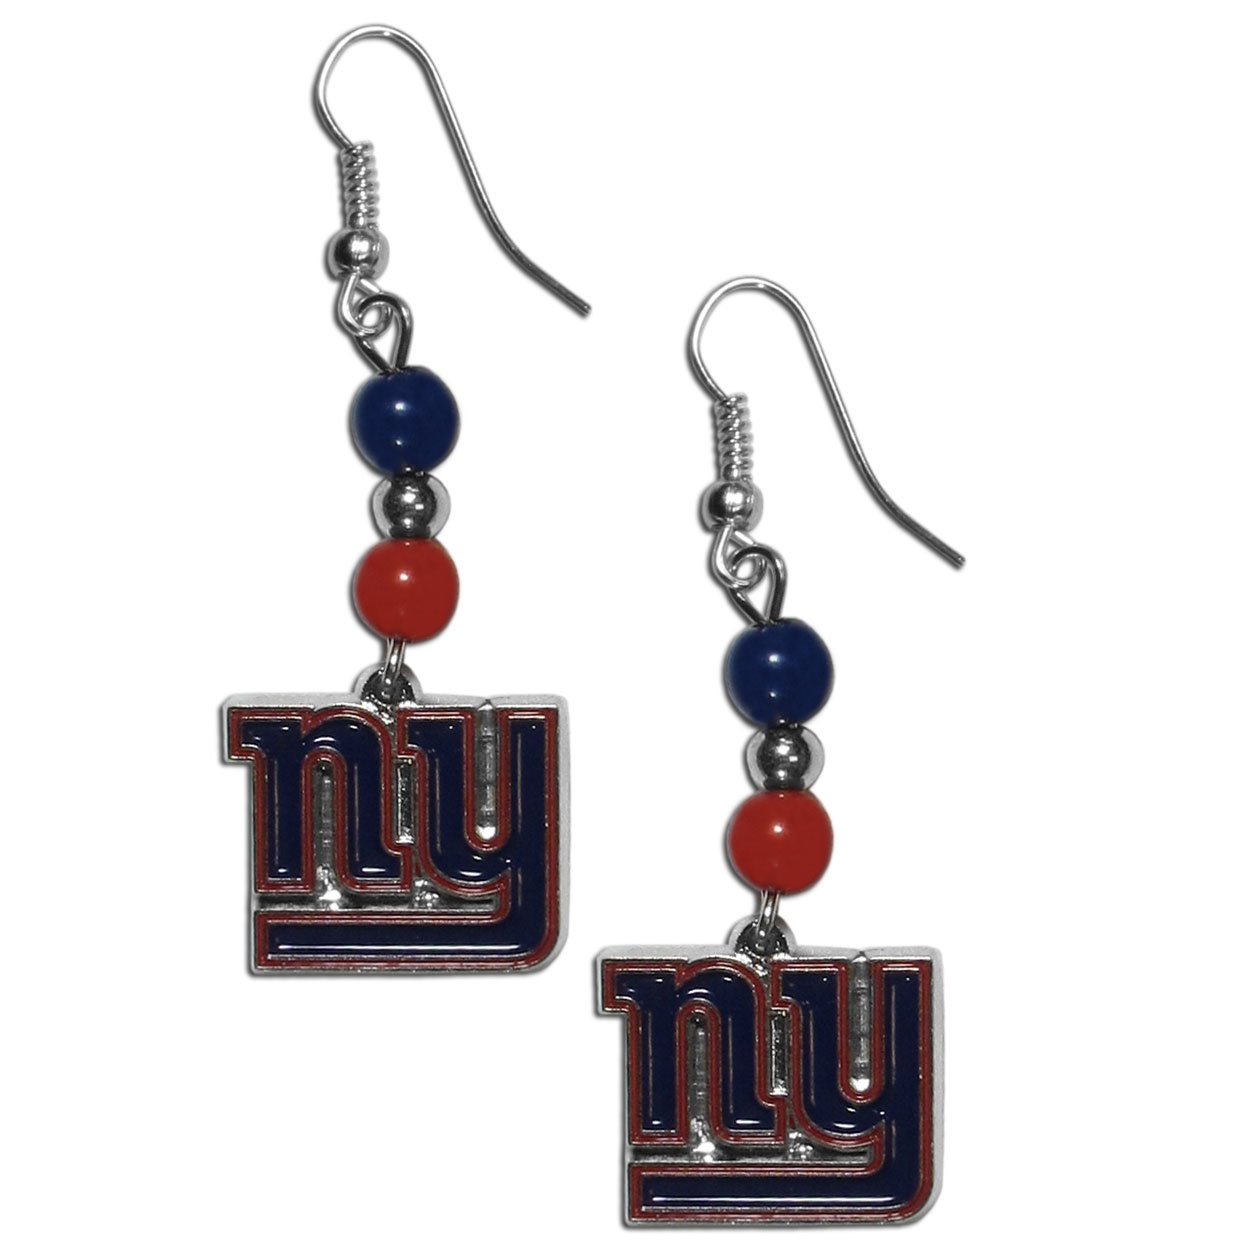 New York Giants Fan Bead Dangle Earrings - Love your team, show it off with our New York Giants bead dangle earrings! These super cute earrings hang approximately 2 inches and features 2 team colored beads and a high polish team charm. A must have for game day!